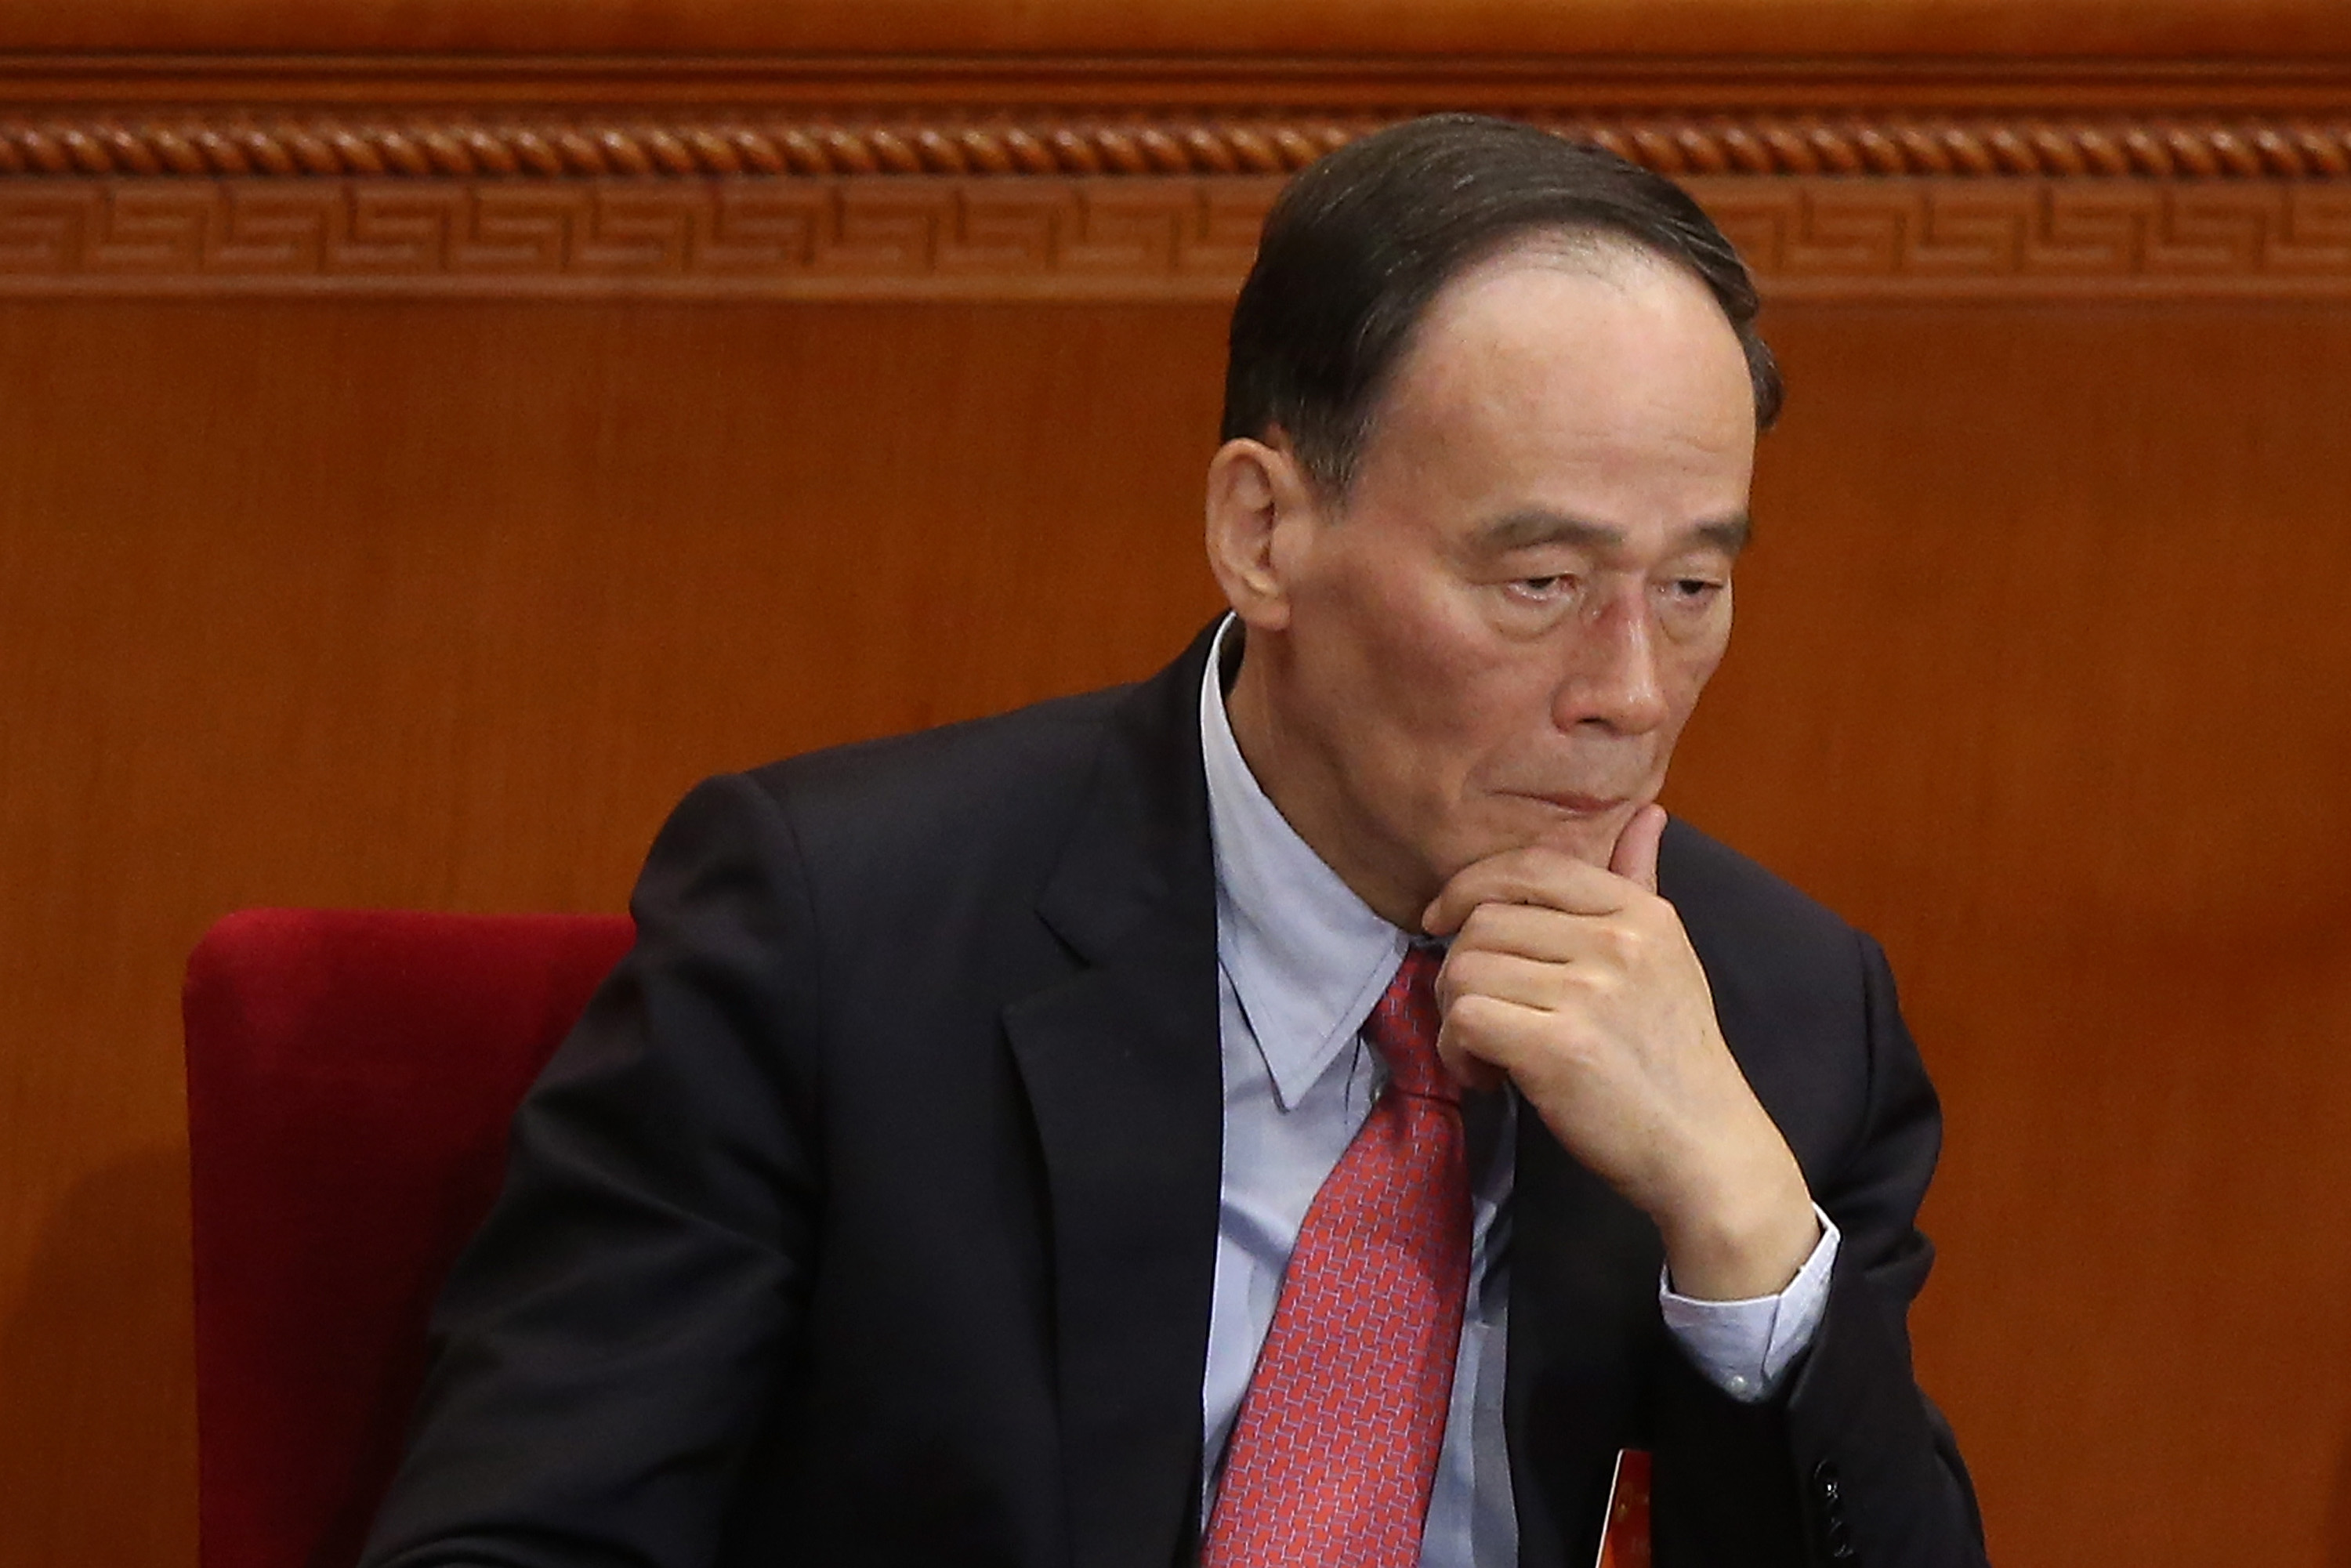 Anti-corruption chief Wang Qishan at the Great Hall of the People in Beijing on March 5, 2014. Recently, anti-corruption investigators criticized the 610 Office, an extralegal Party organization that oversees the persecution of Falun Gong, in a feedback report. (Feng Li/Getty Images)